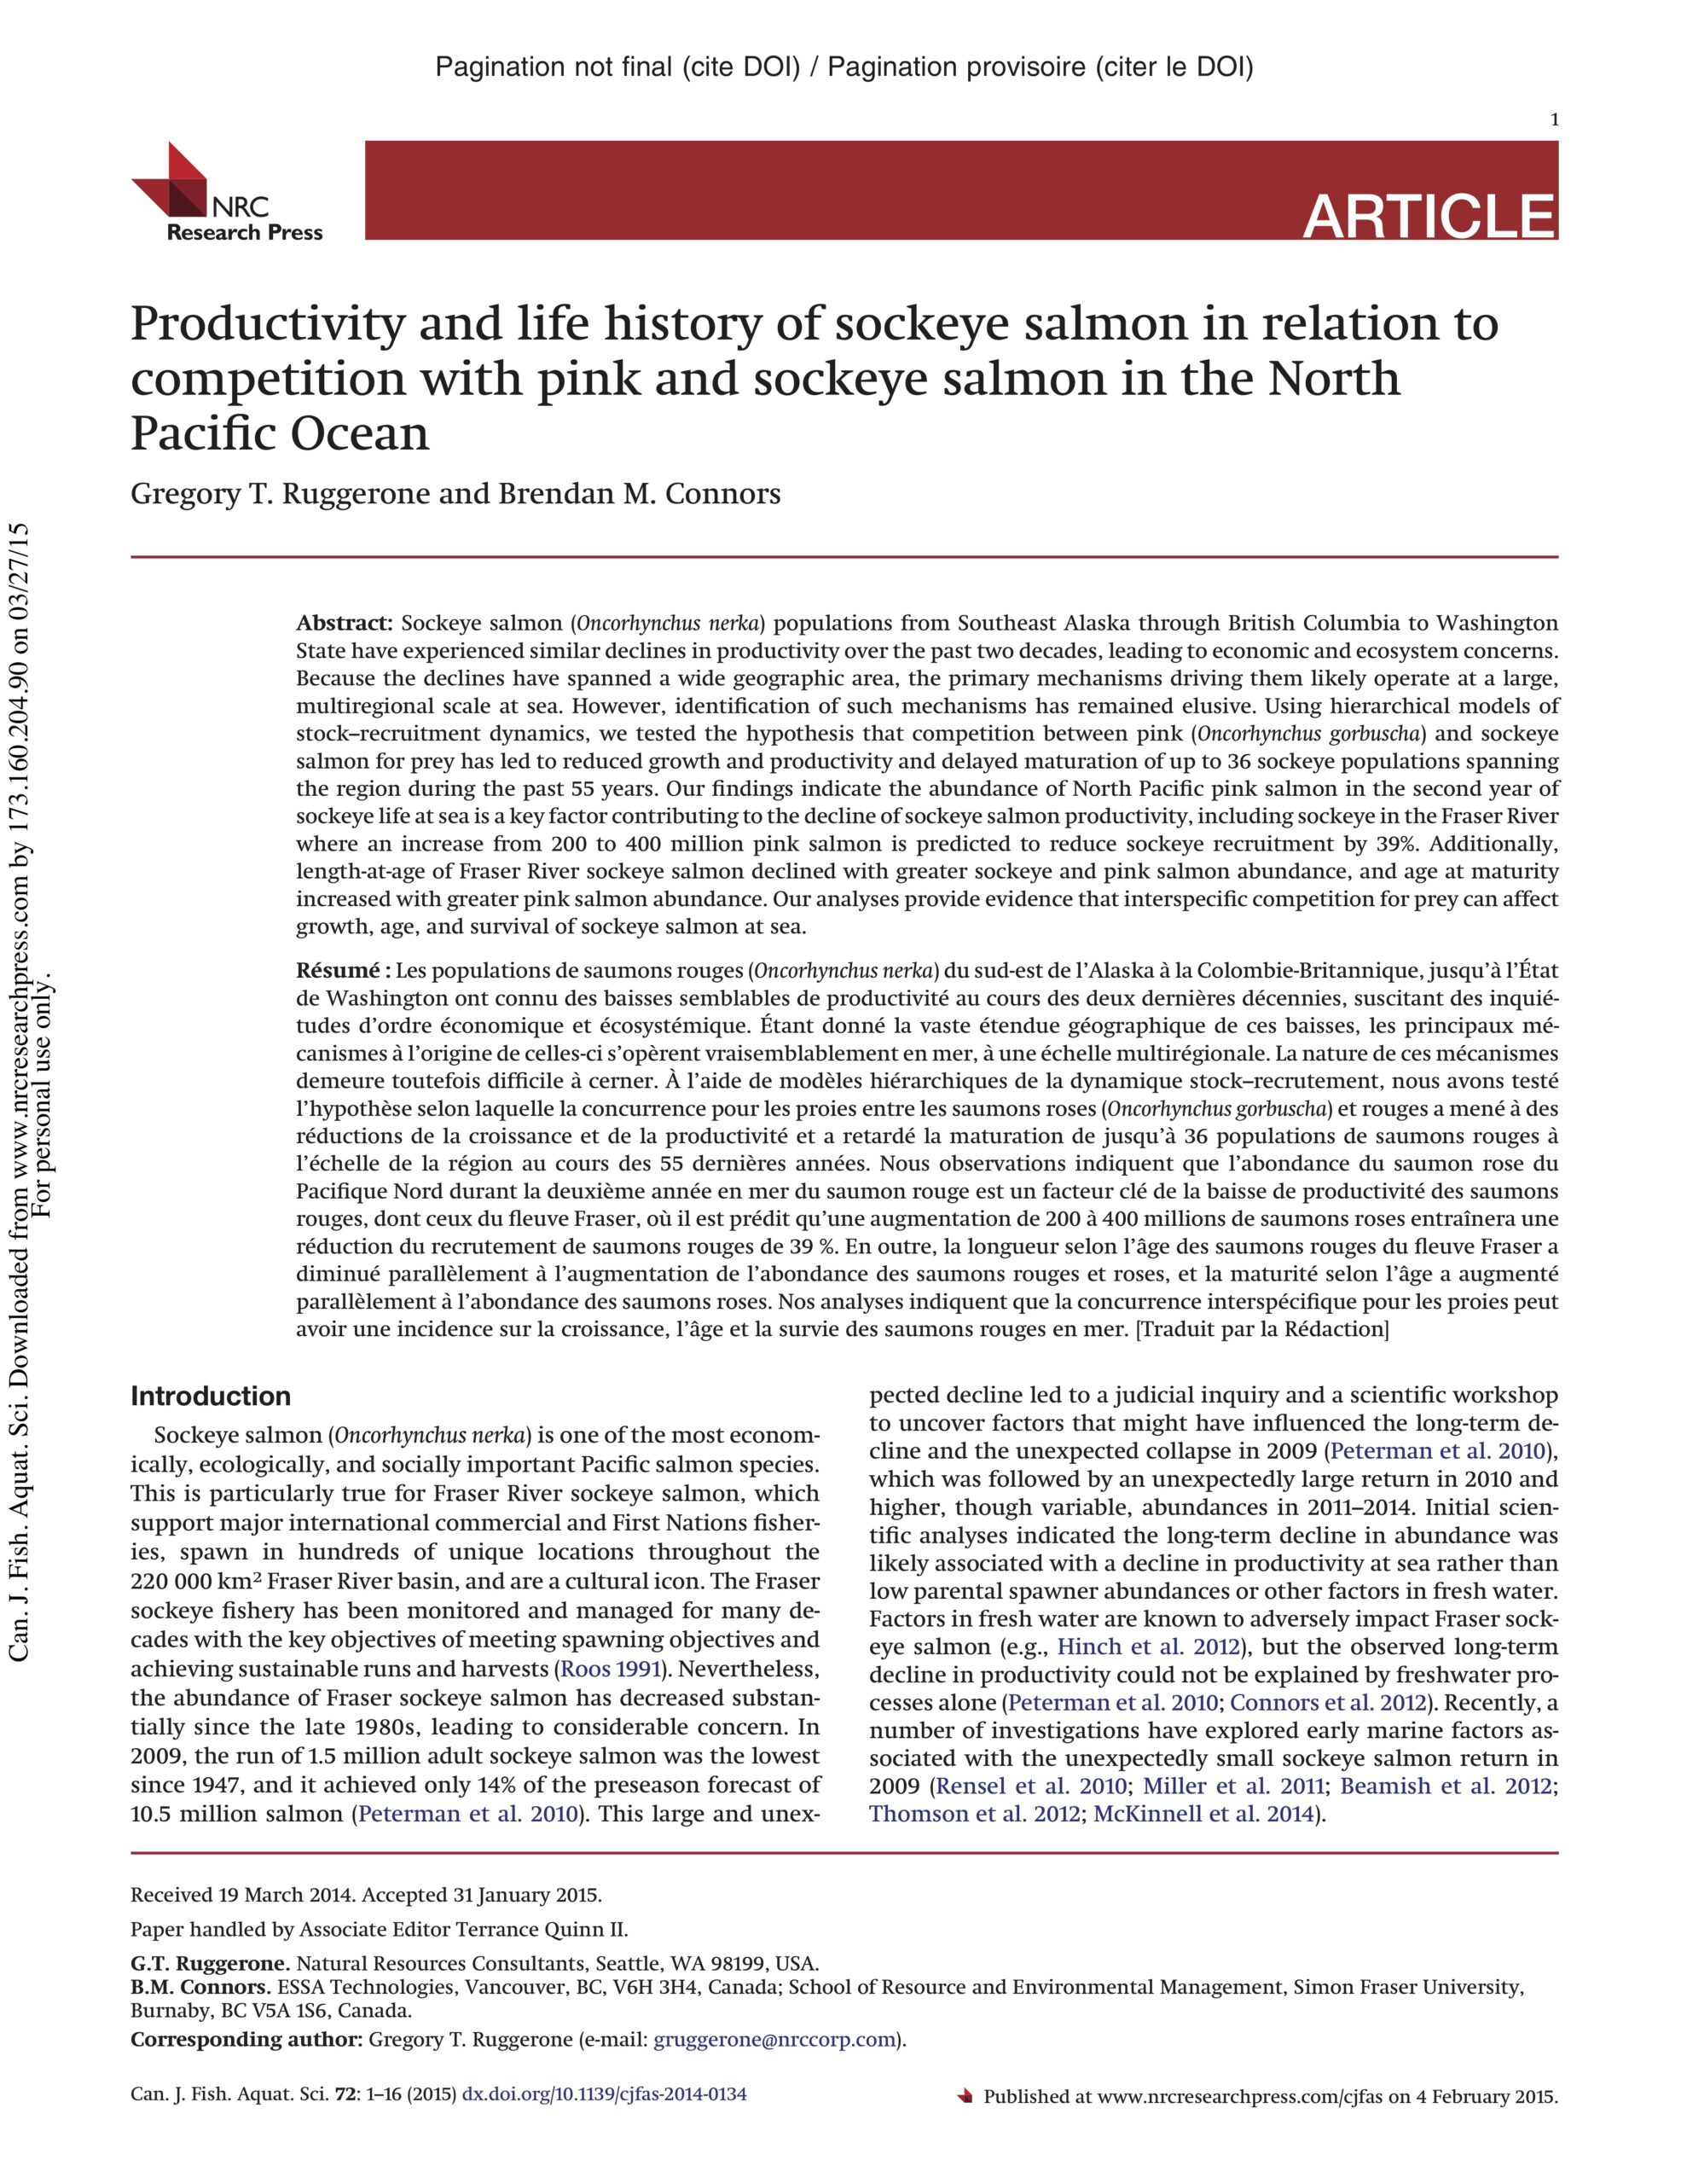 Ruggerone & Connors 2015: Productivity and life history of sockeye salmon in relation to competition with pink and sockeye salmon in the North Pacific Ocean